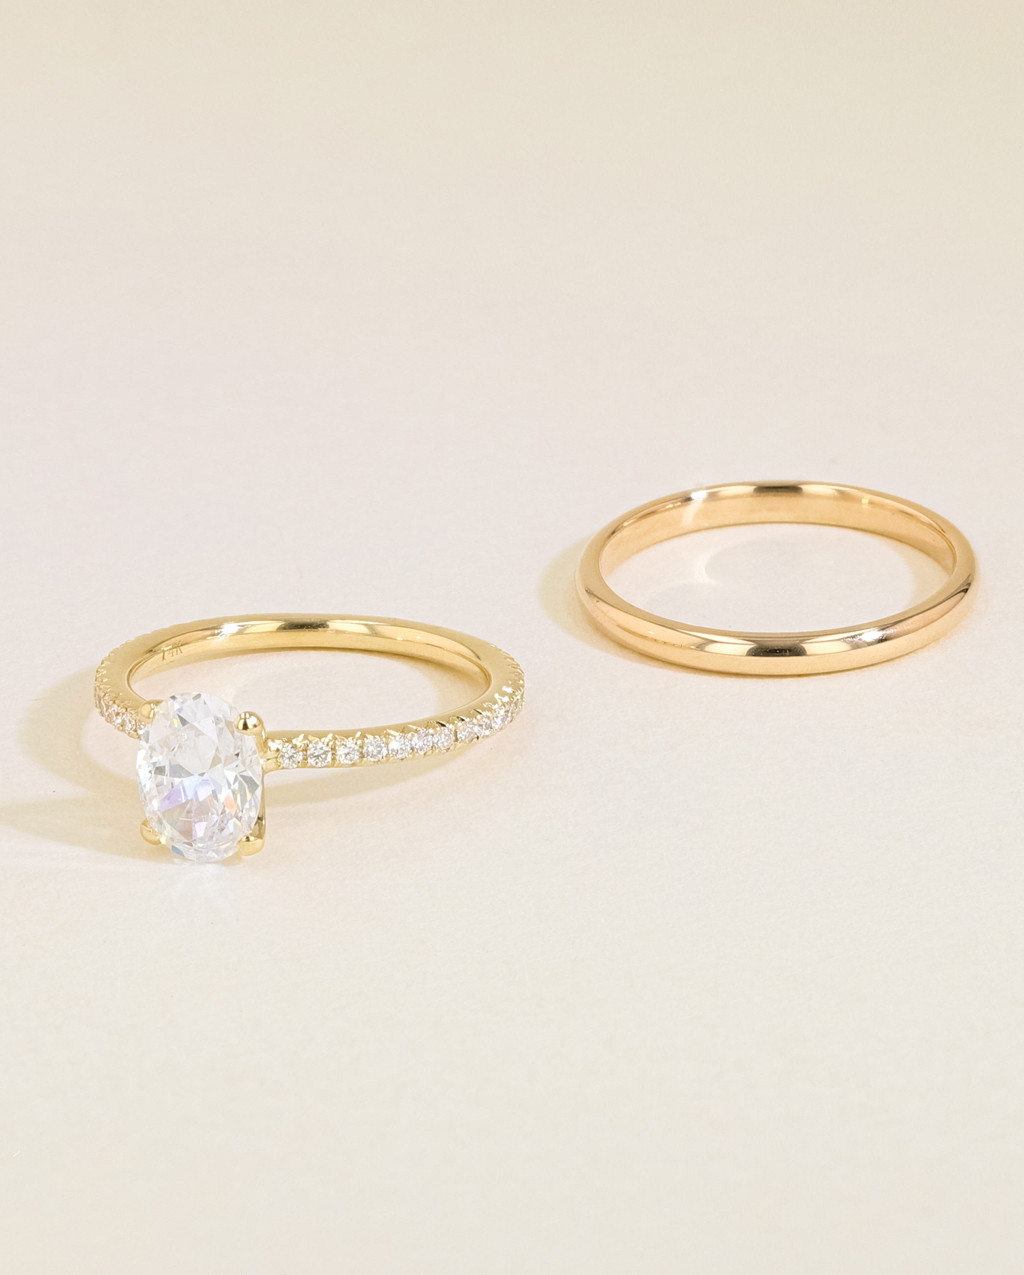 Solitaire Pavé Diamond Engagement Ring Set side by side